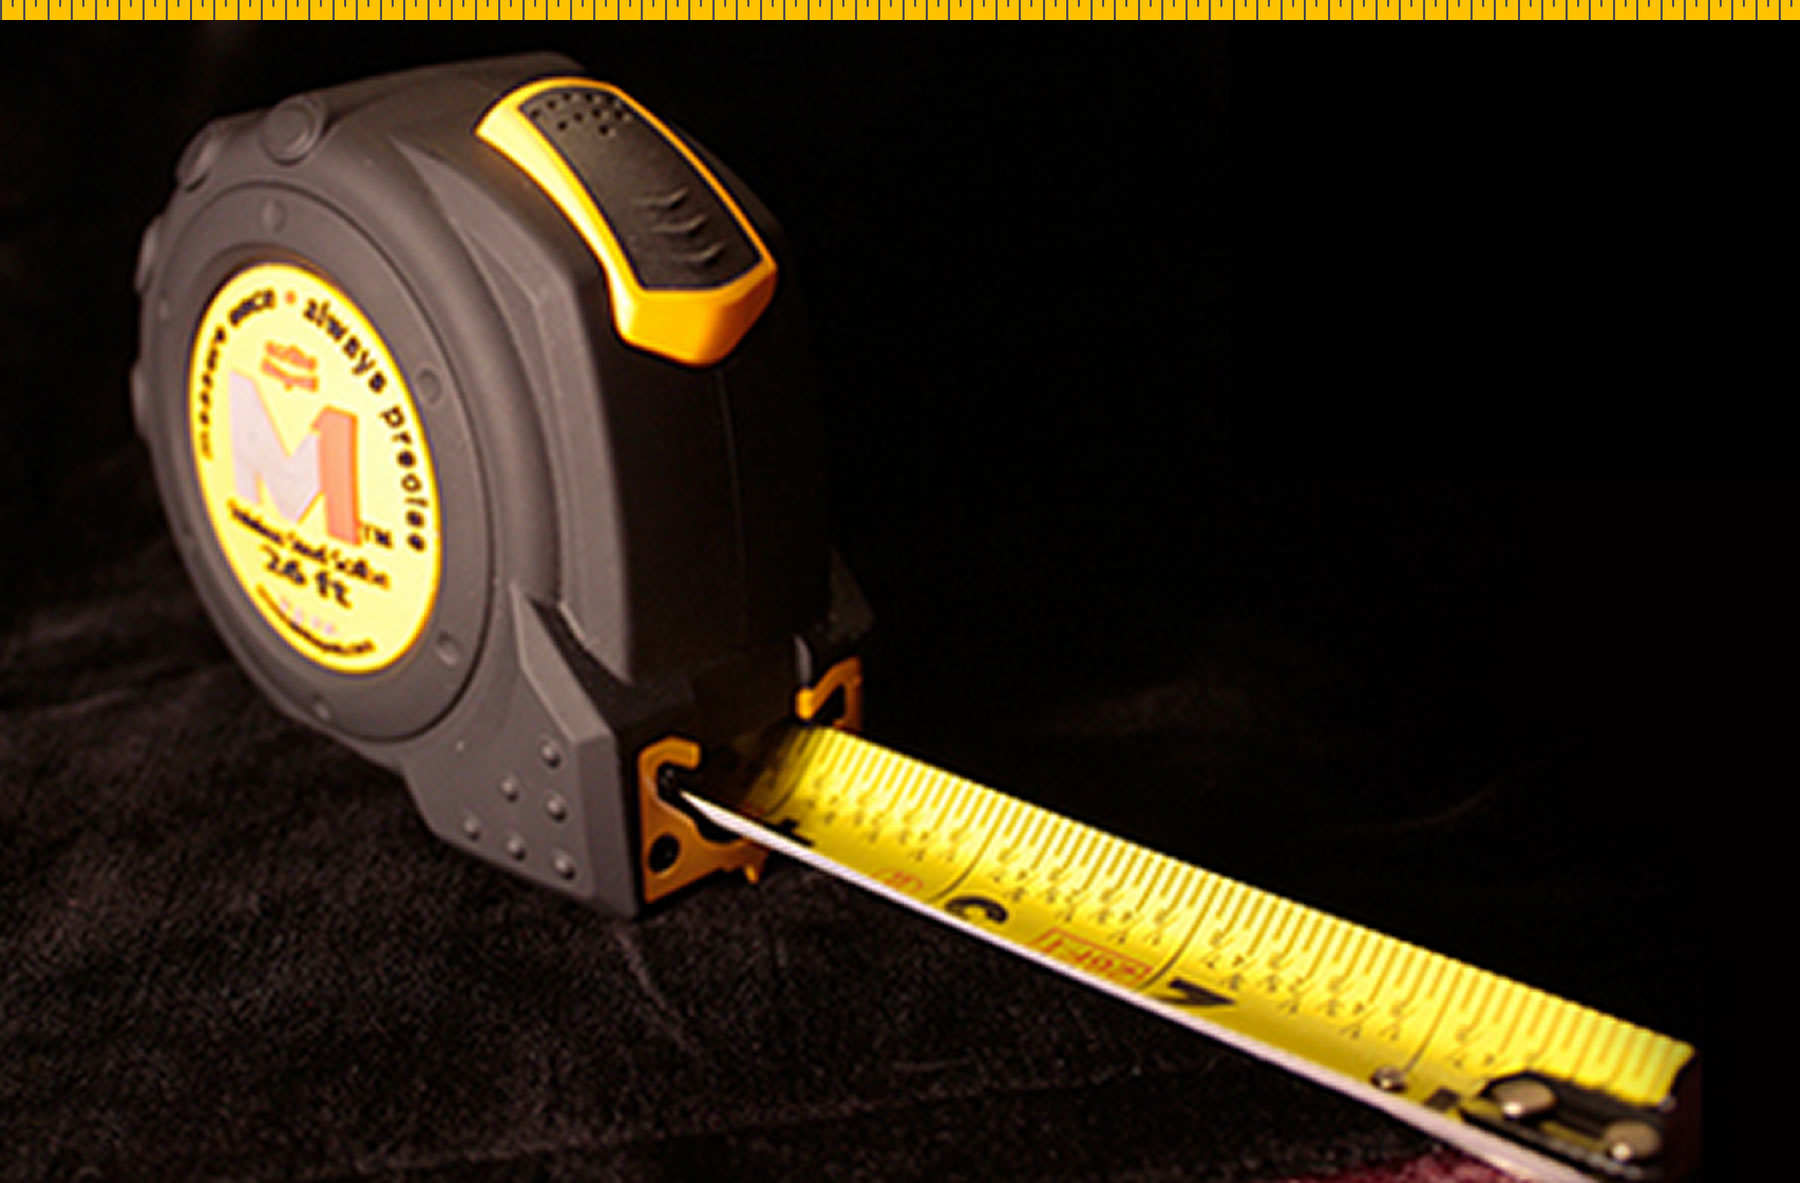 M1 Tape Measure Blackbg